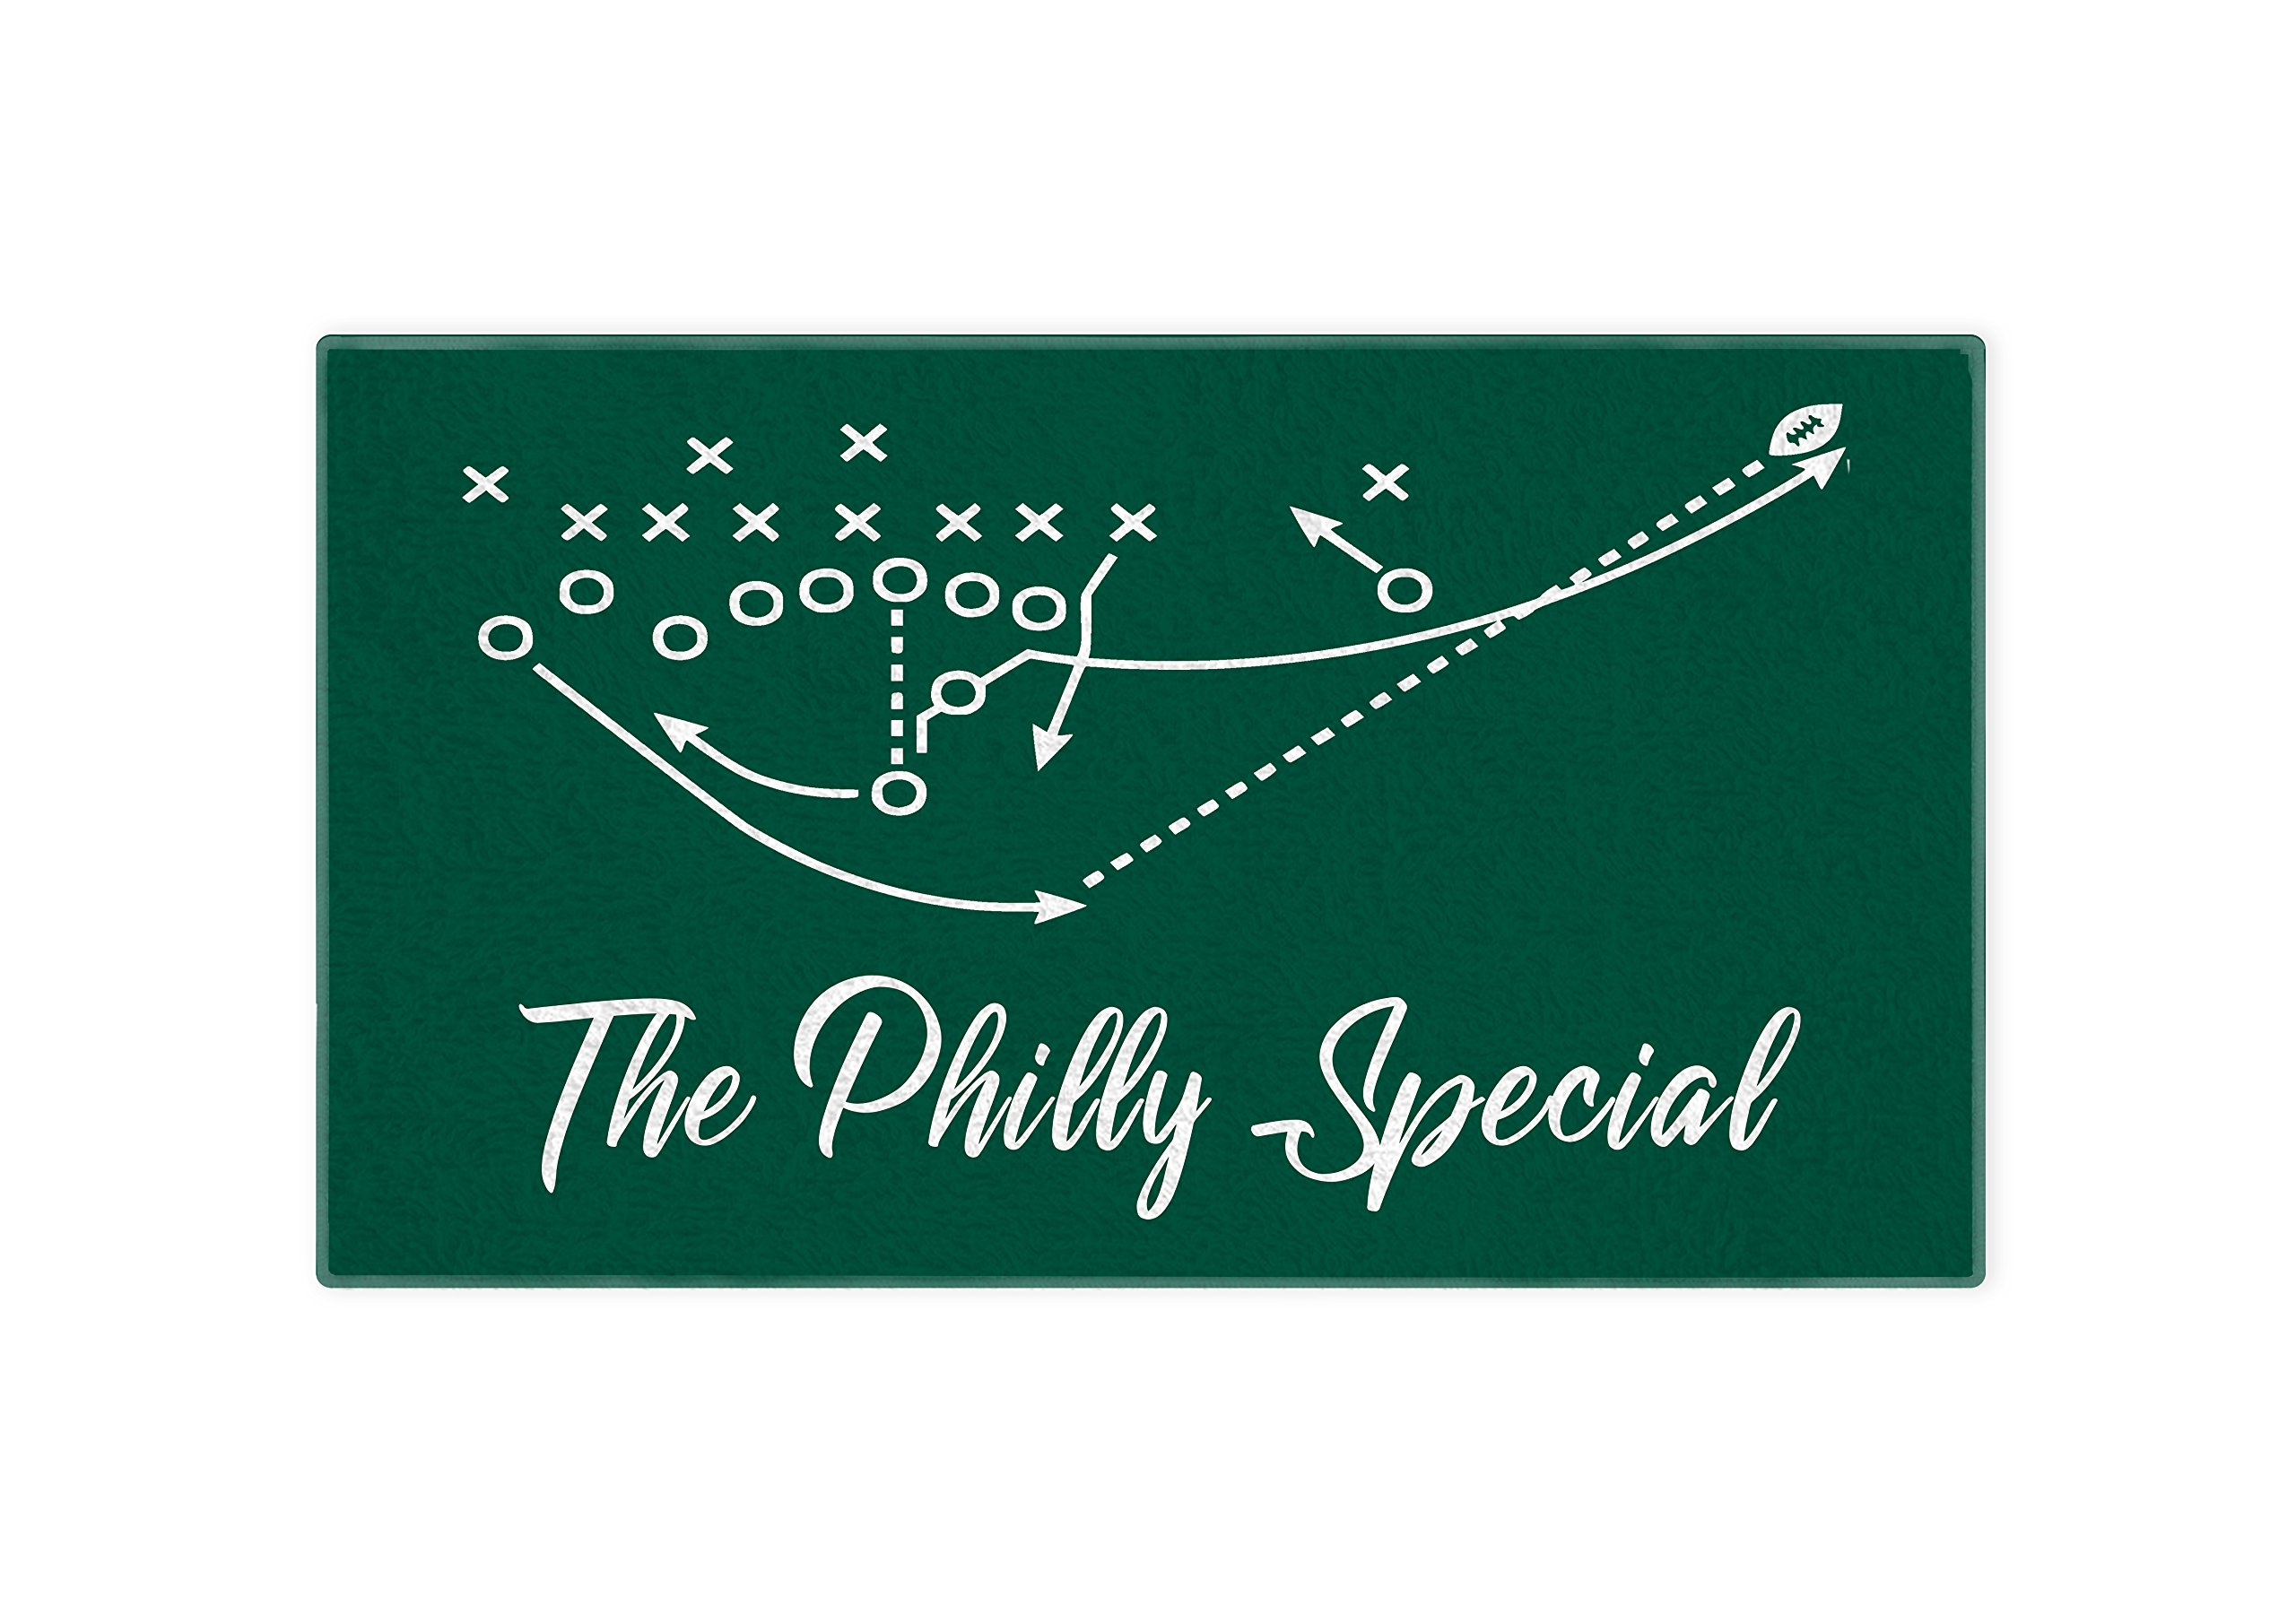 Personalized Corner Philadelphia Eagles Hand Towel 28x16 - Philly Special Super Bowl Champs - Football Mens Apparel Golf Bag Accessory